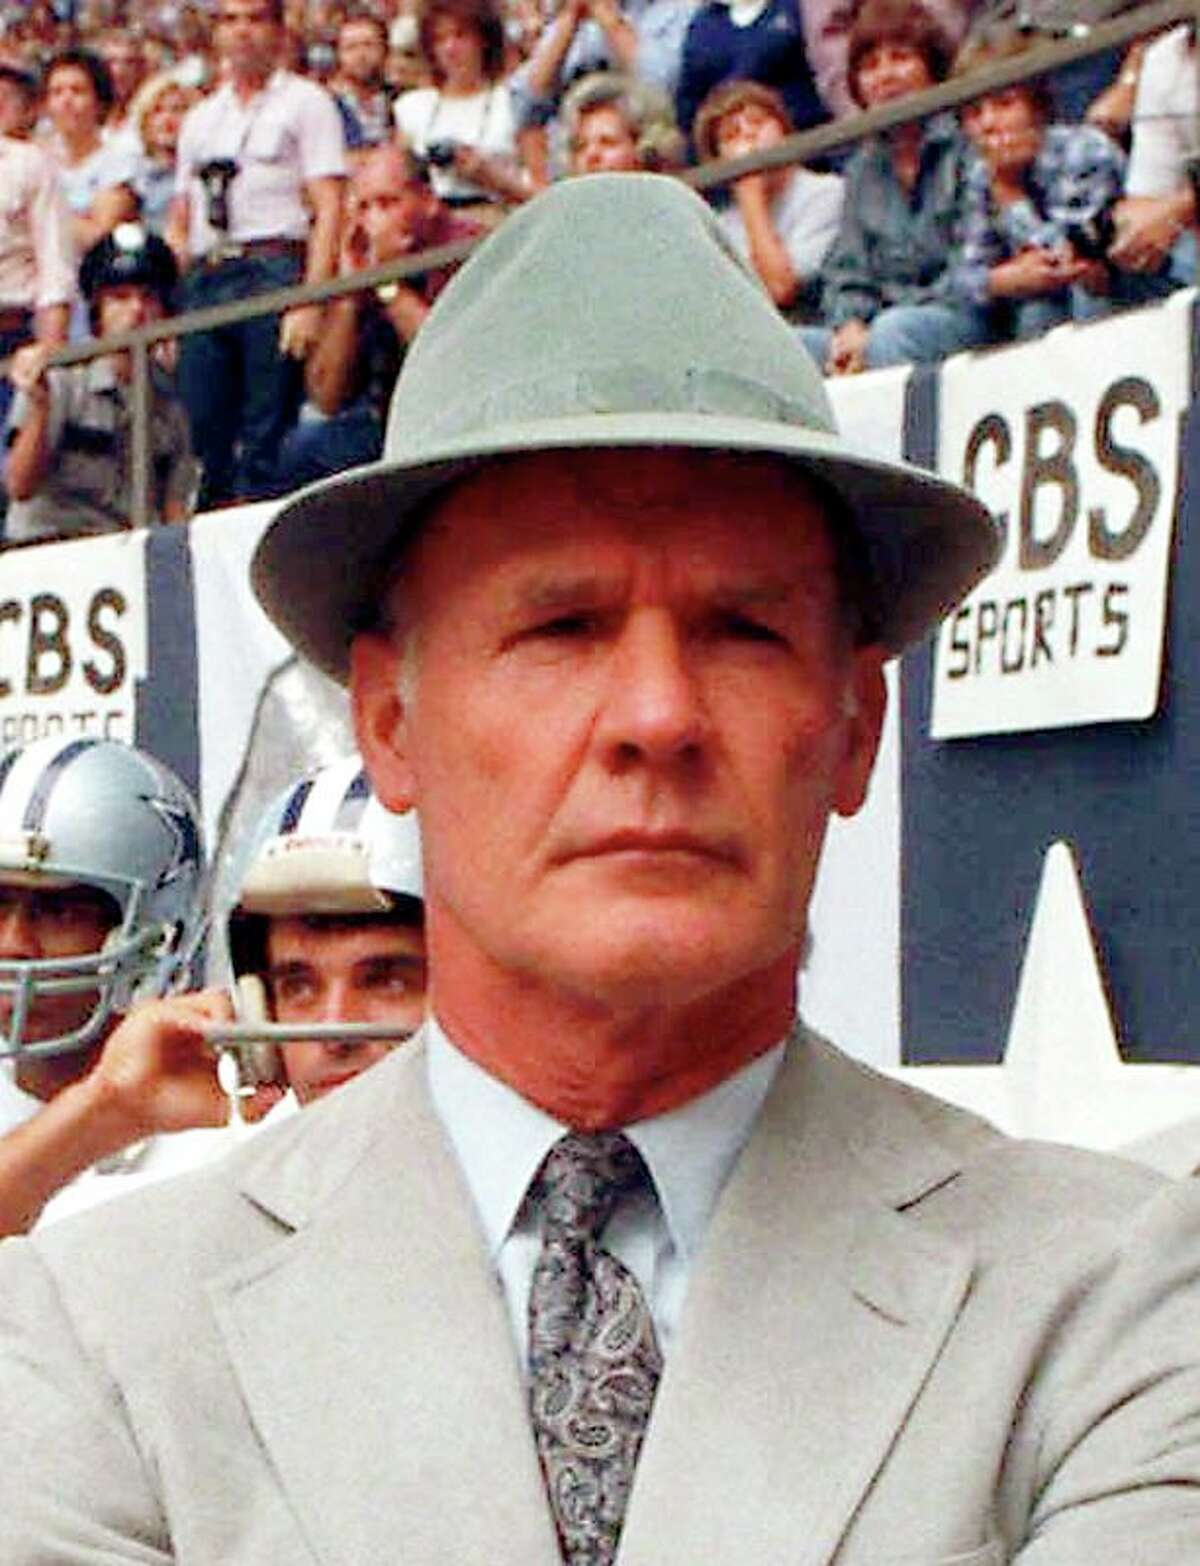 Dallas Cowboys coach Tom Landry coached the cowboys from their beginning in 1960 through 1988 winning two Super Bowls in five appearances.